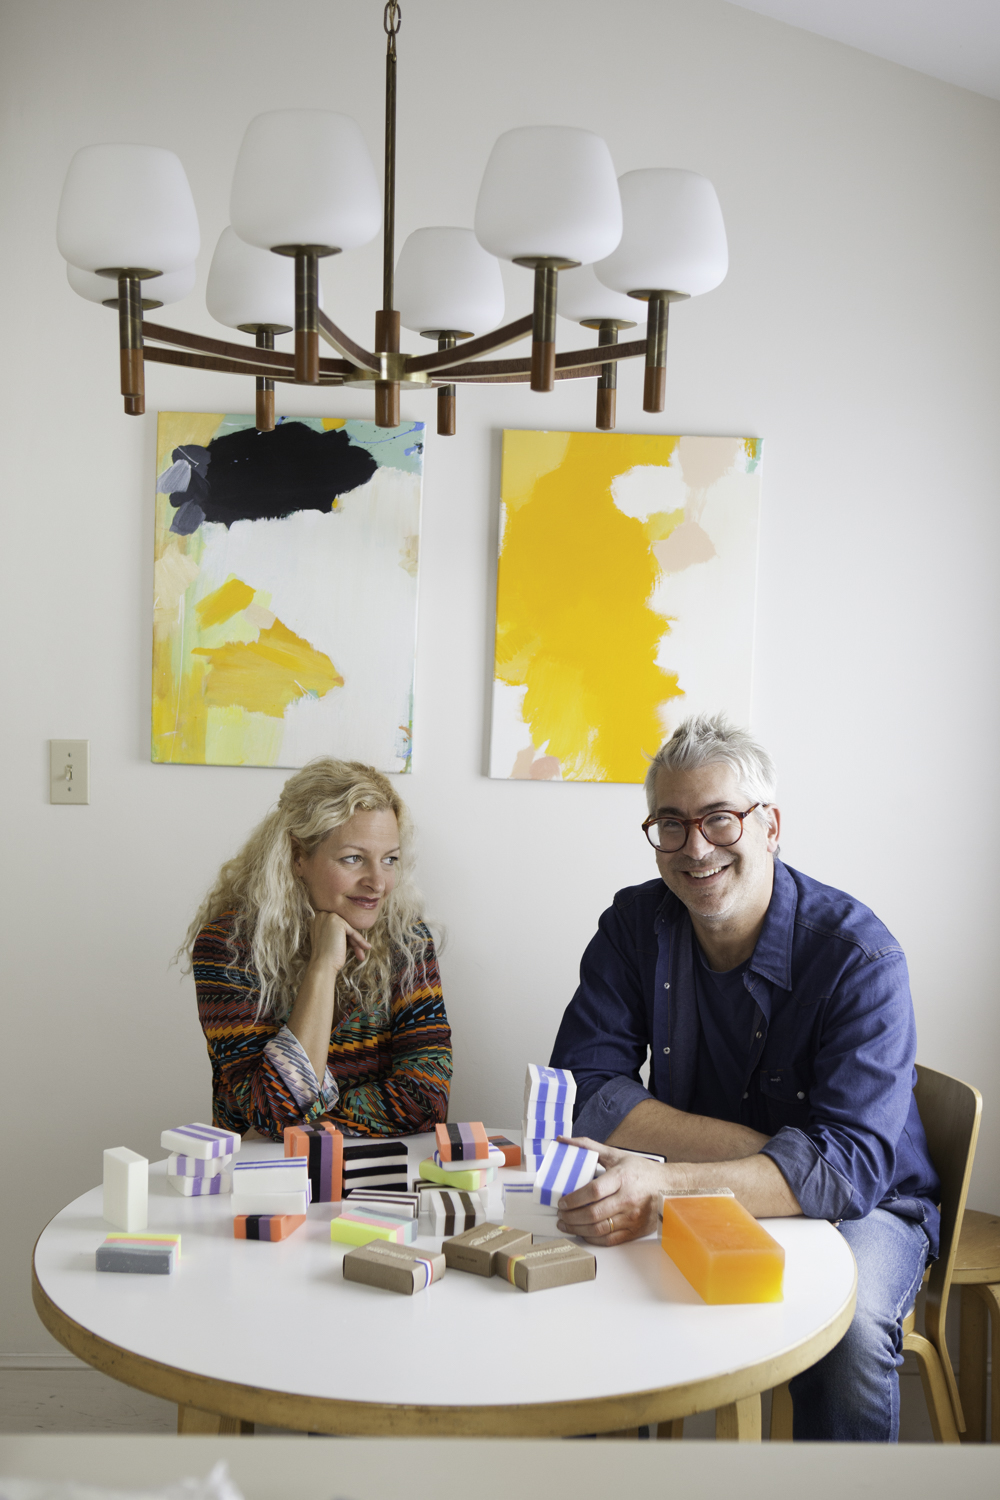 So fun to photograph Linda and John of Wary Meyers again, this time for Old Port Magazine. And in their new house!   Check out their soaps and candles here:  www.warymeyers.bigcartel.com    Image © Greta Rybus